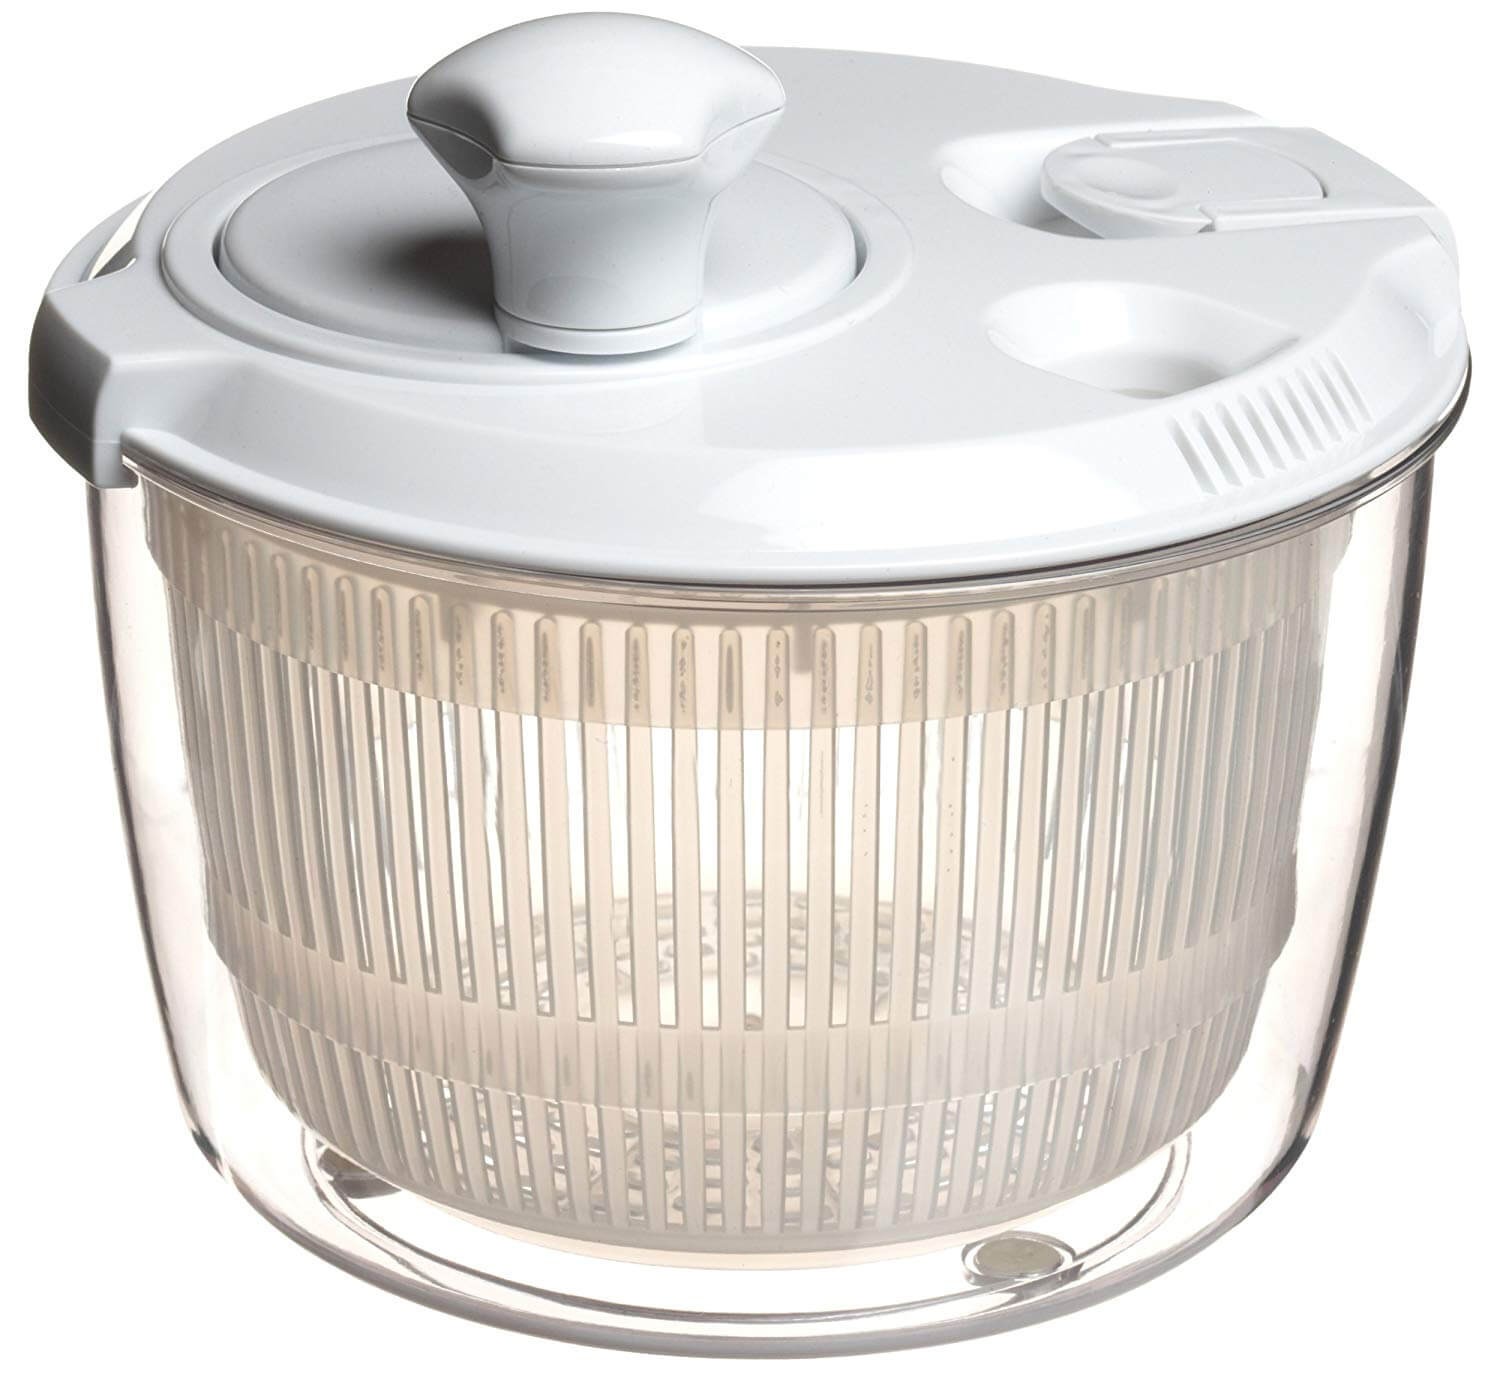 Xtraordinary Home Products Mini Salad Spinner